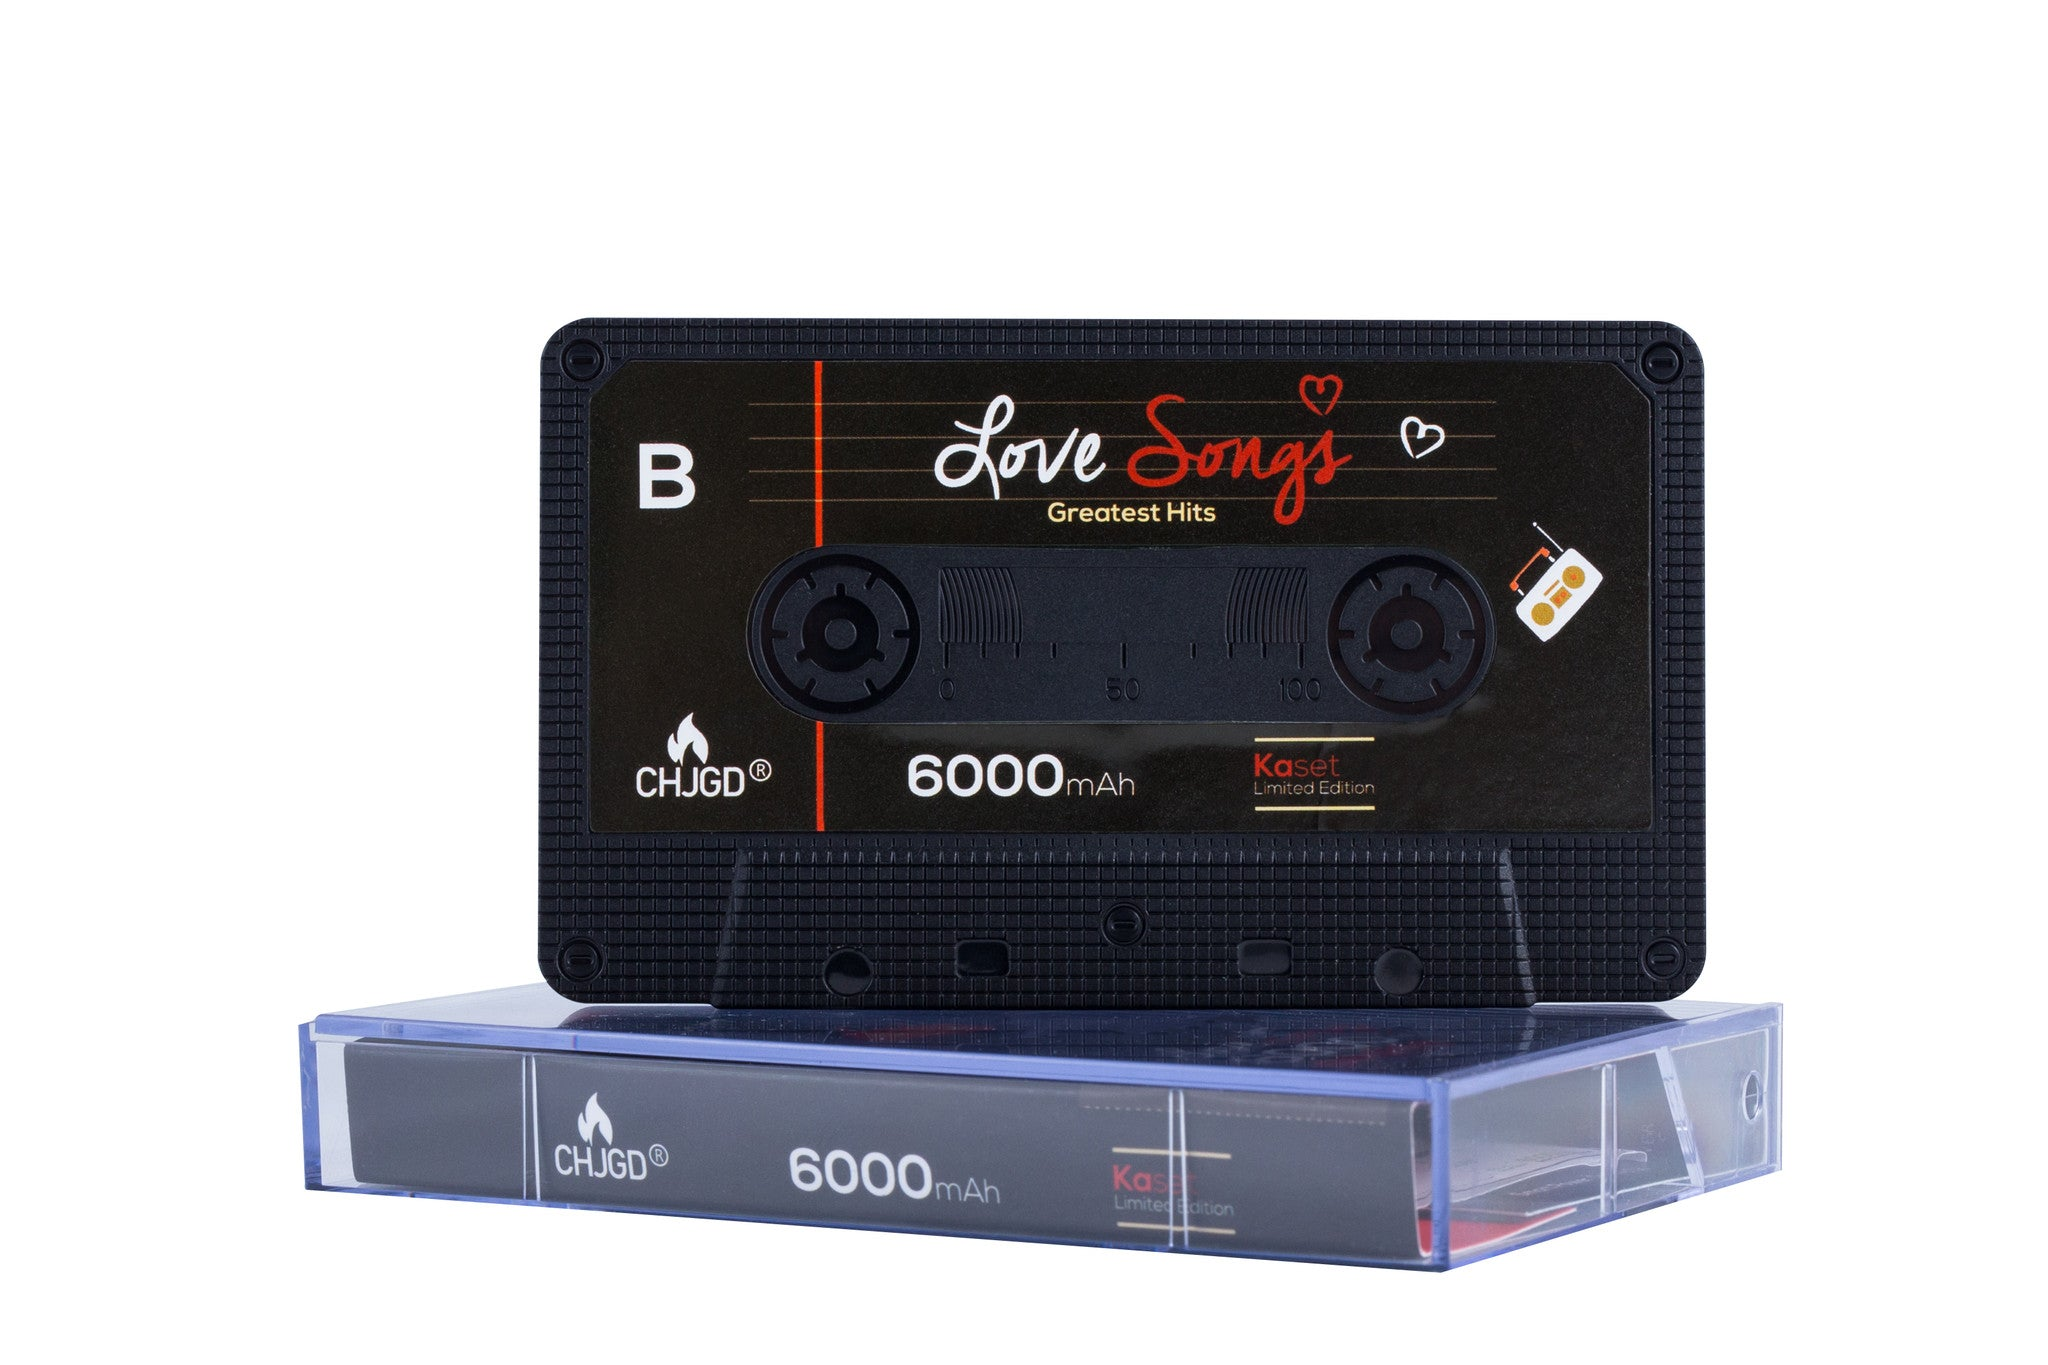 CHJGD® Kaset 6,000 mAh Powerbank - Love Songs - CHARGEDPOWER.COM